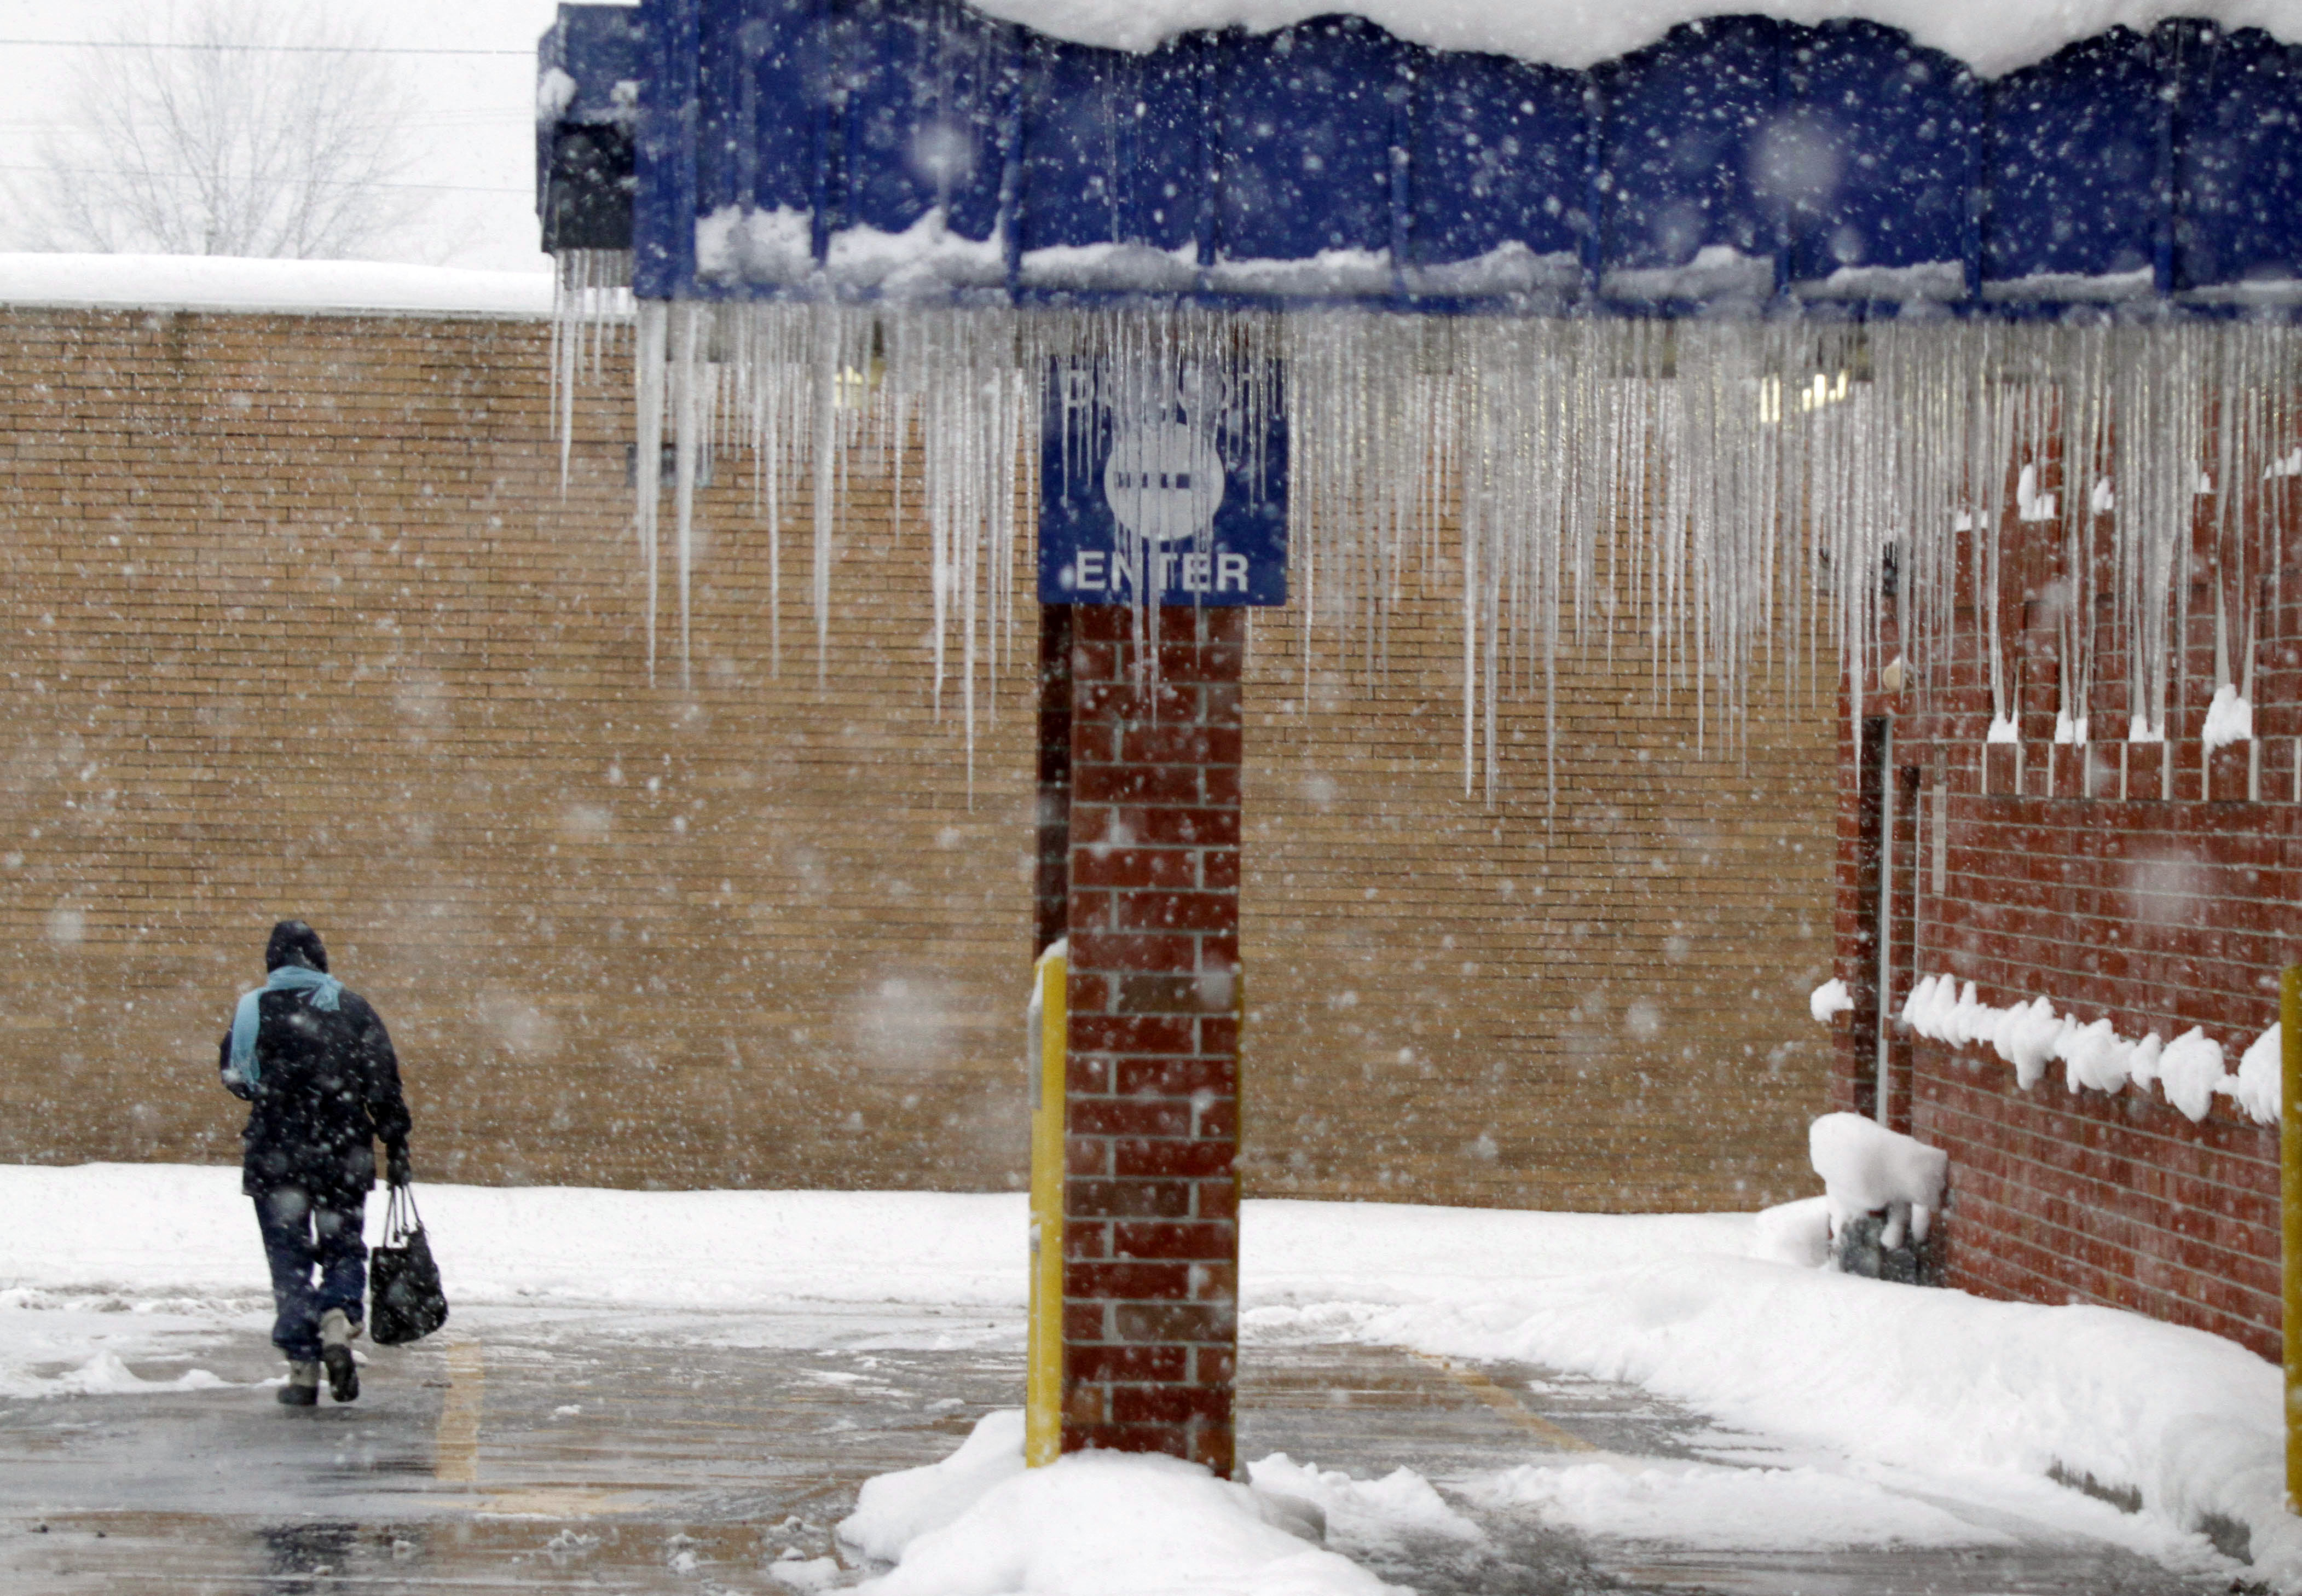 Icicles on drive-thru overhang with woman walking